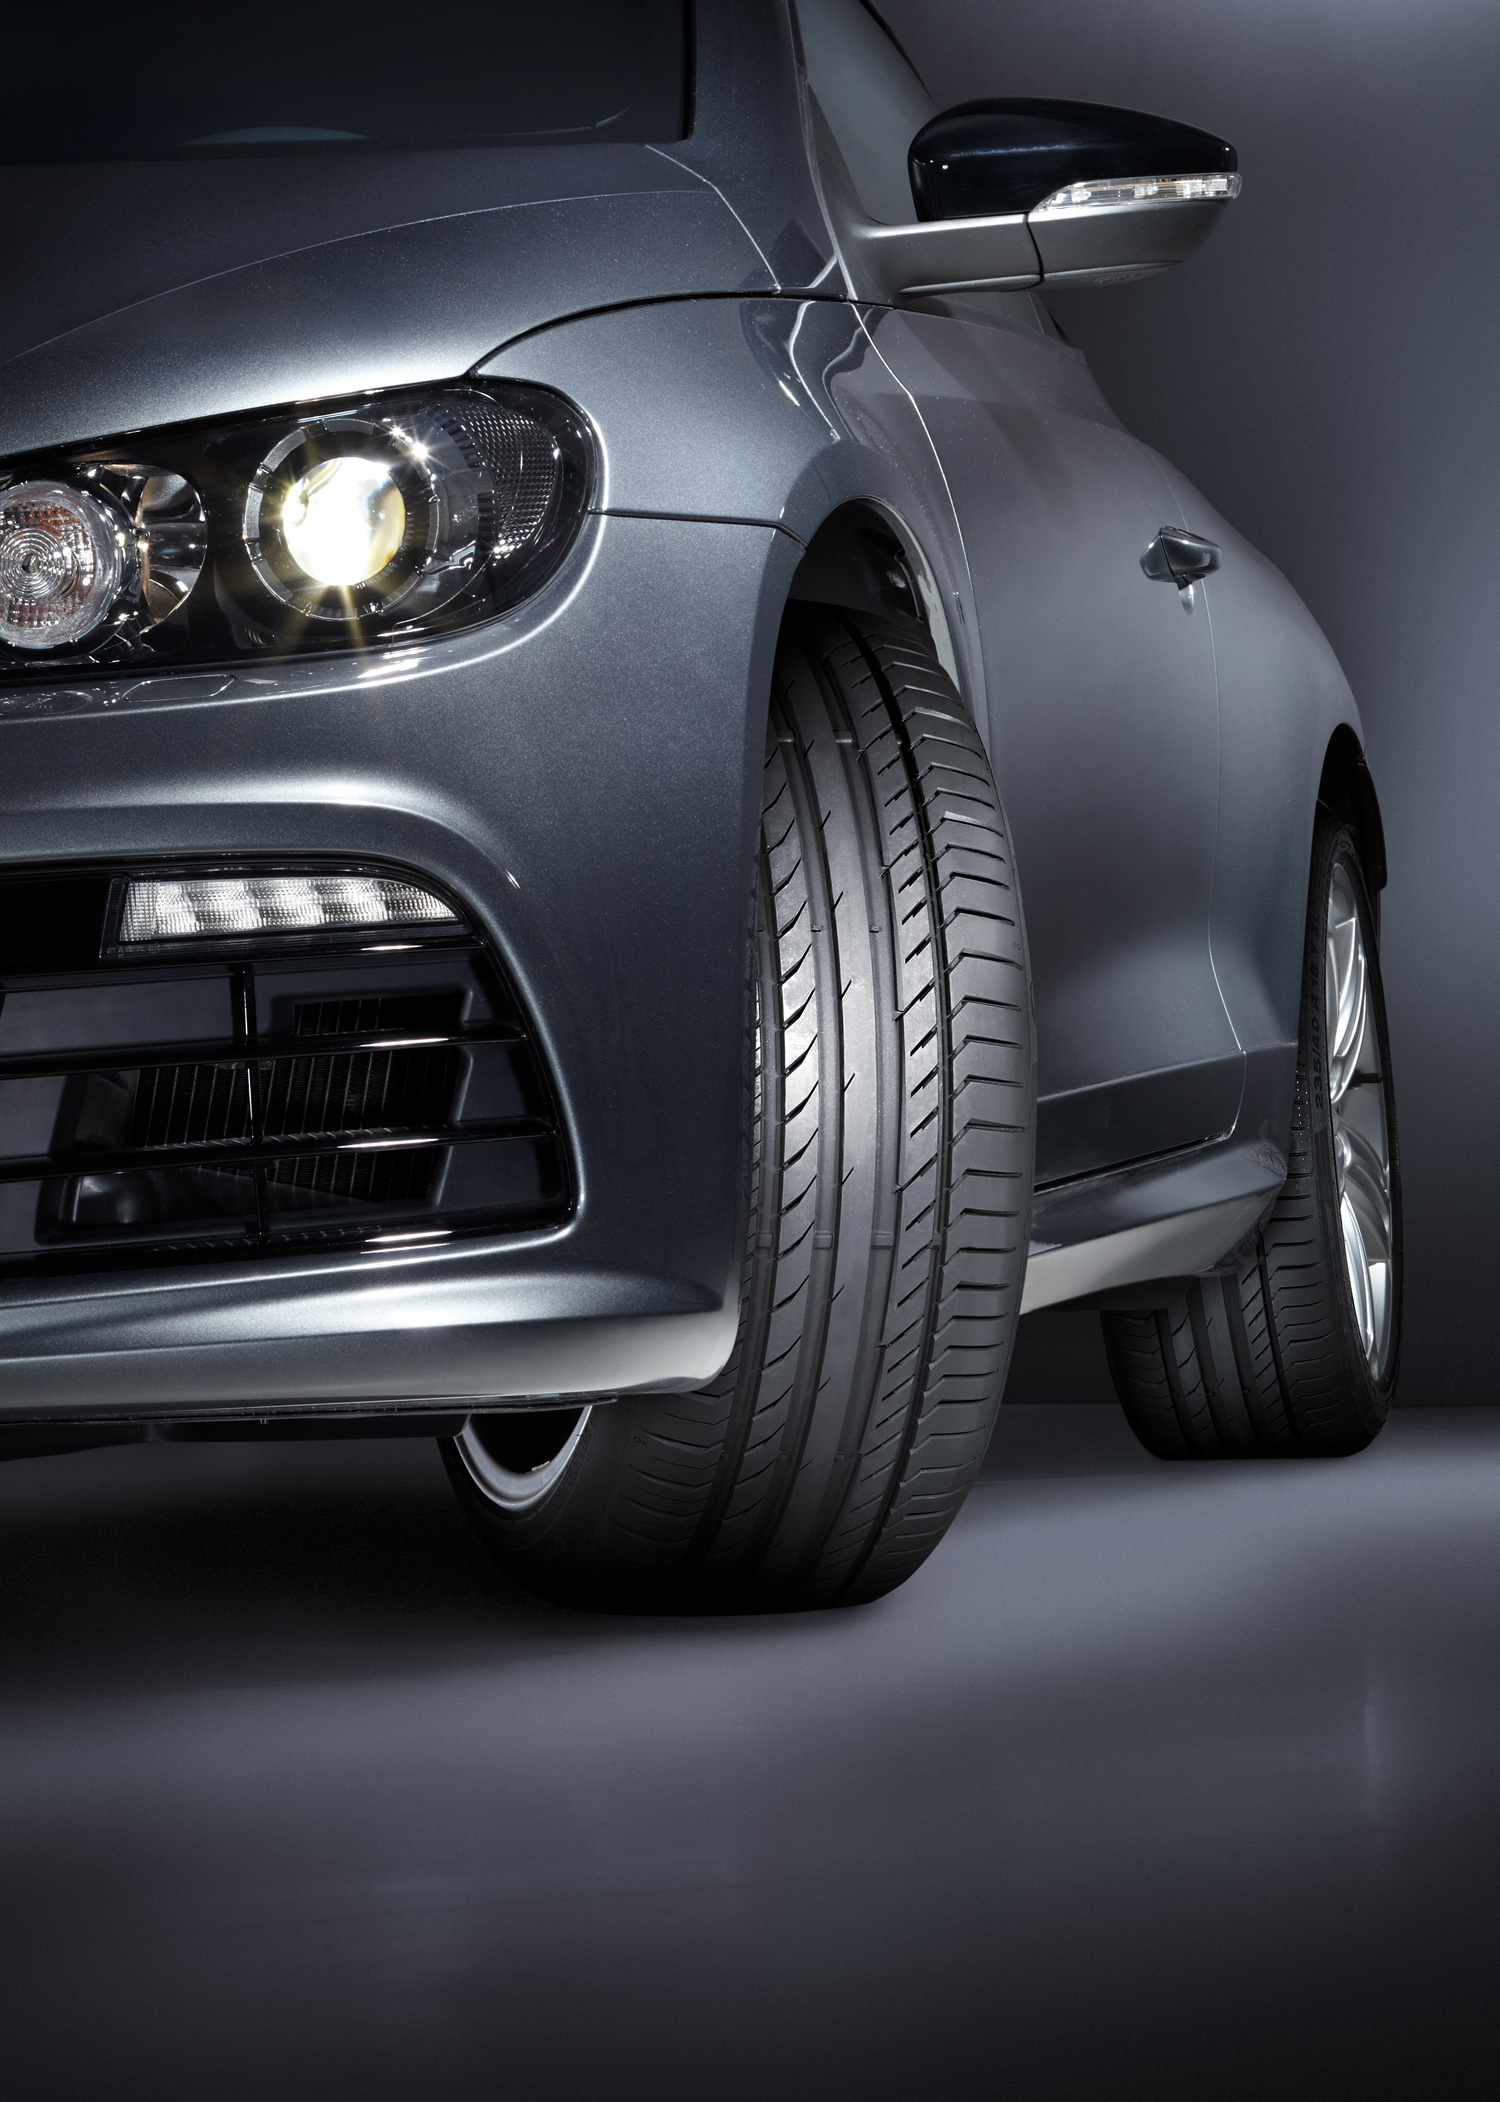 Check out the 'special offers' section on the ATS Euromaster website to find all the latest special offers and promotions, including a student and graduate discount and great discounts on Michelin tyres.